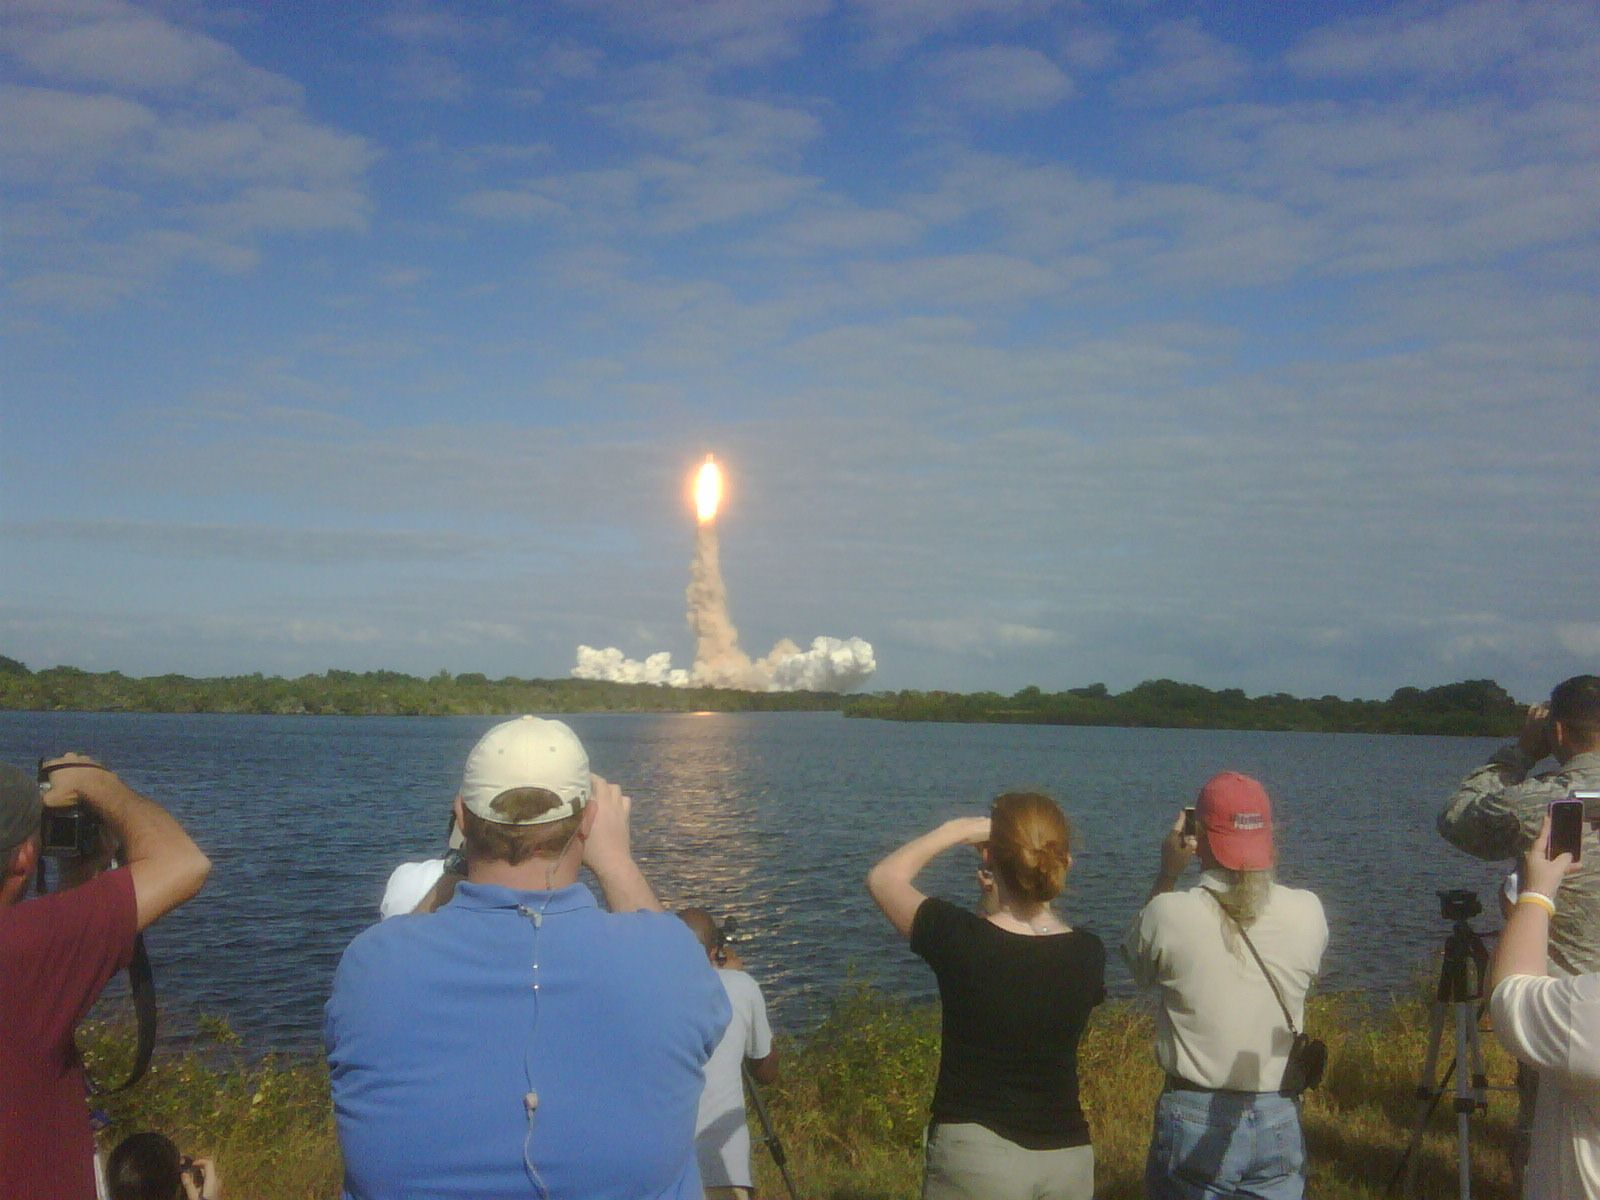 Rocket launch at Kennedy Space Center, Florida